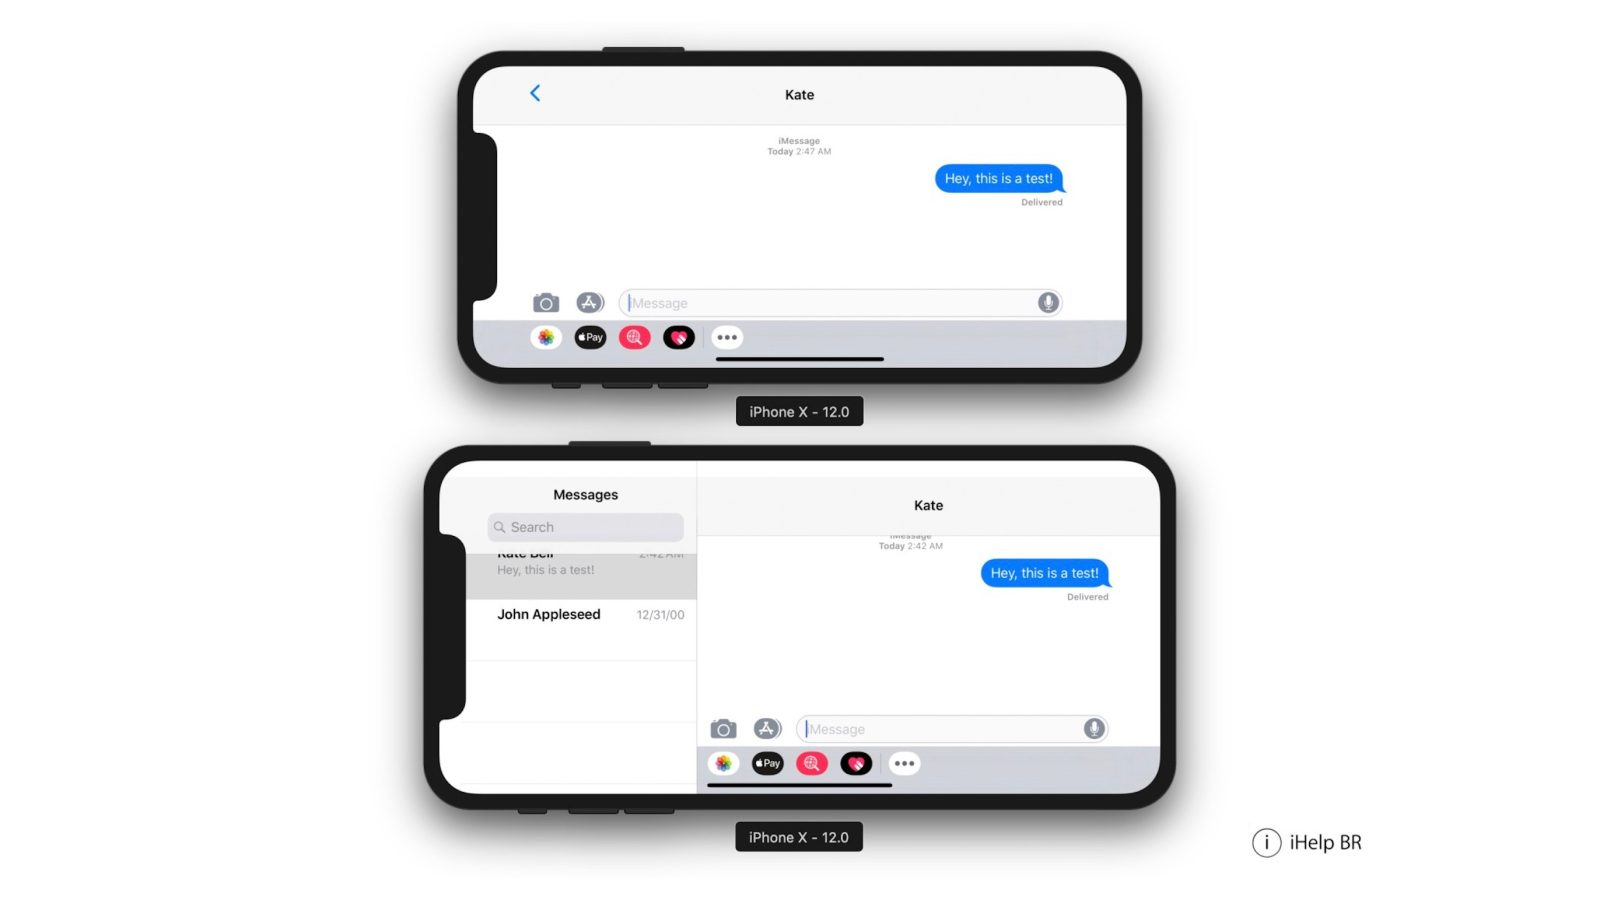 iOS 12 beta hints at rumored iPhone X Plus with iPad-like ...